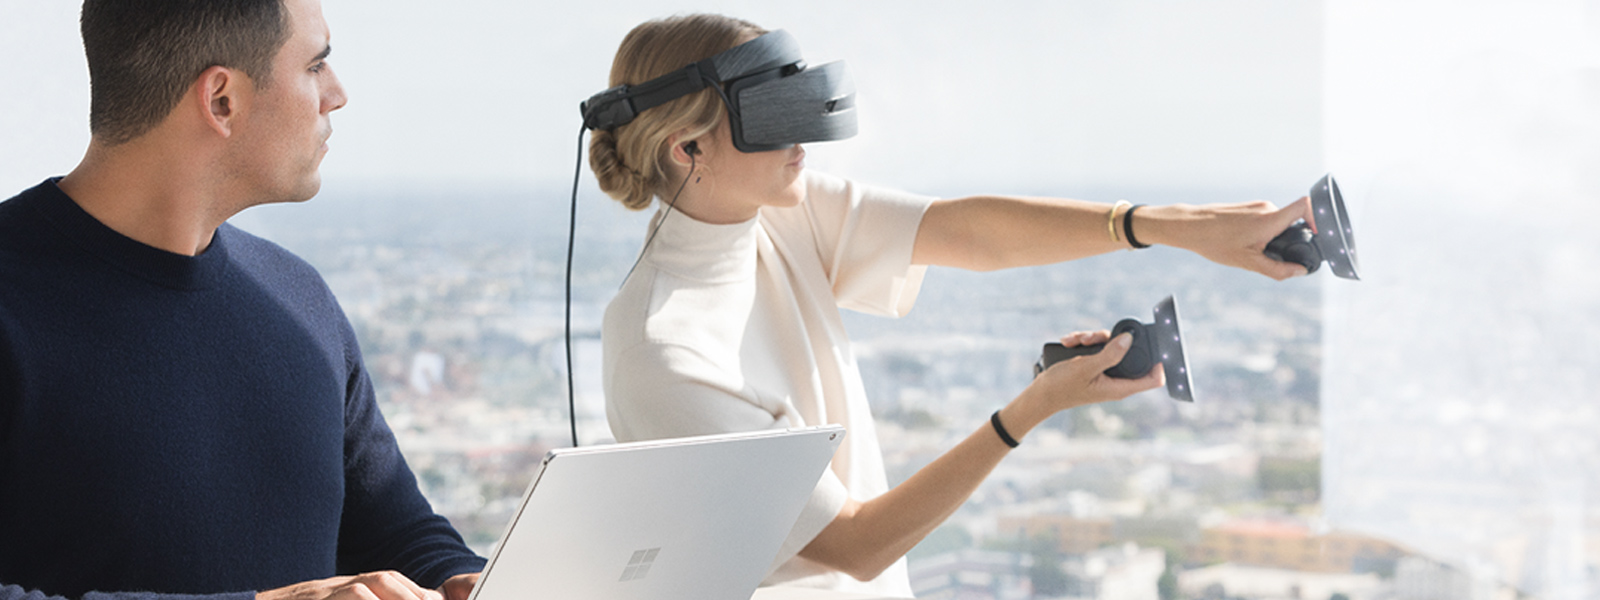 A woman using a Windows Mixed Reality headset and motion controller.